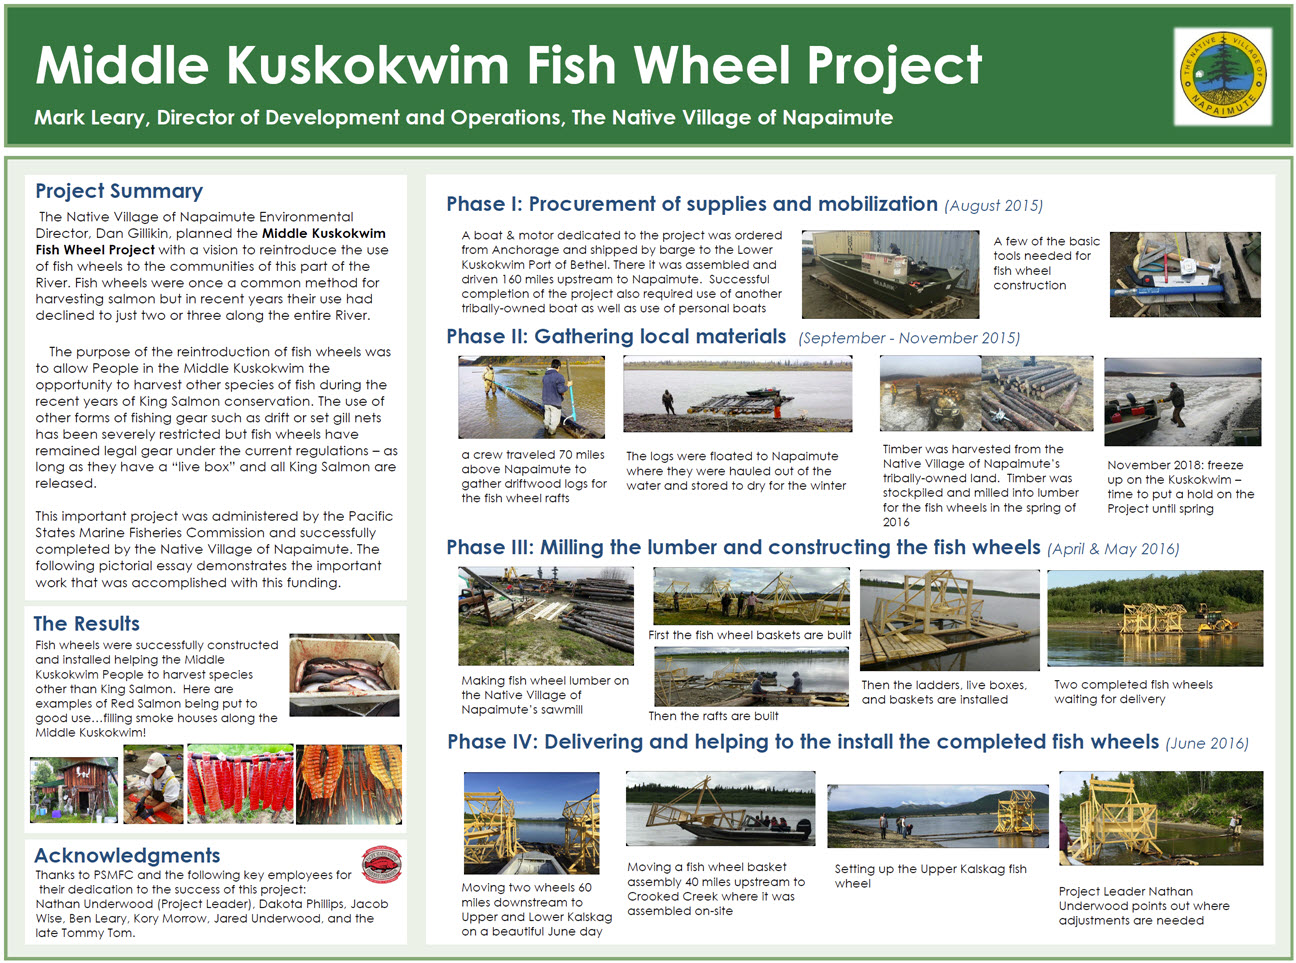 Middle Kuskokwim Fish Wheel Project